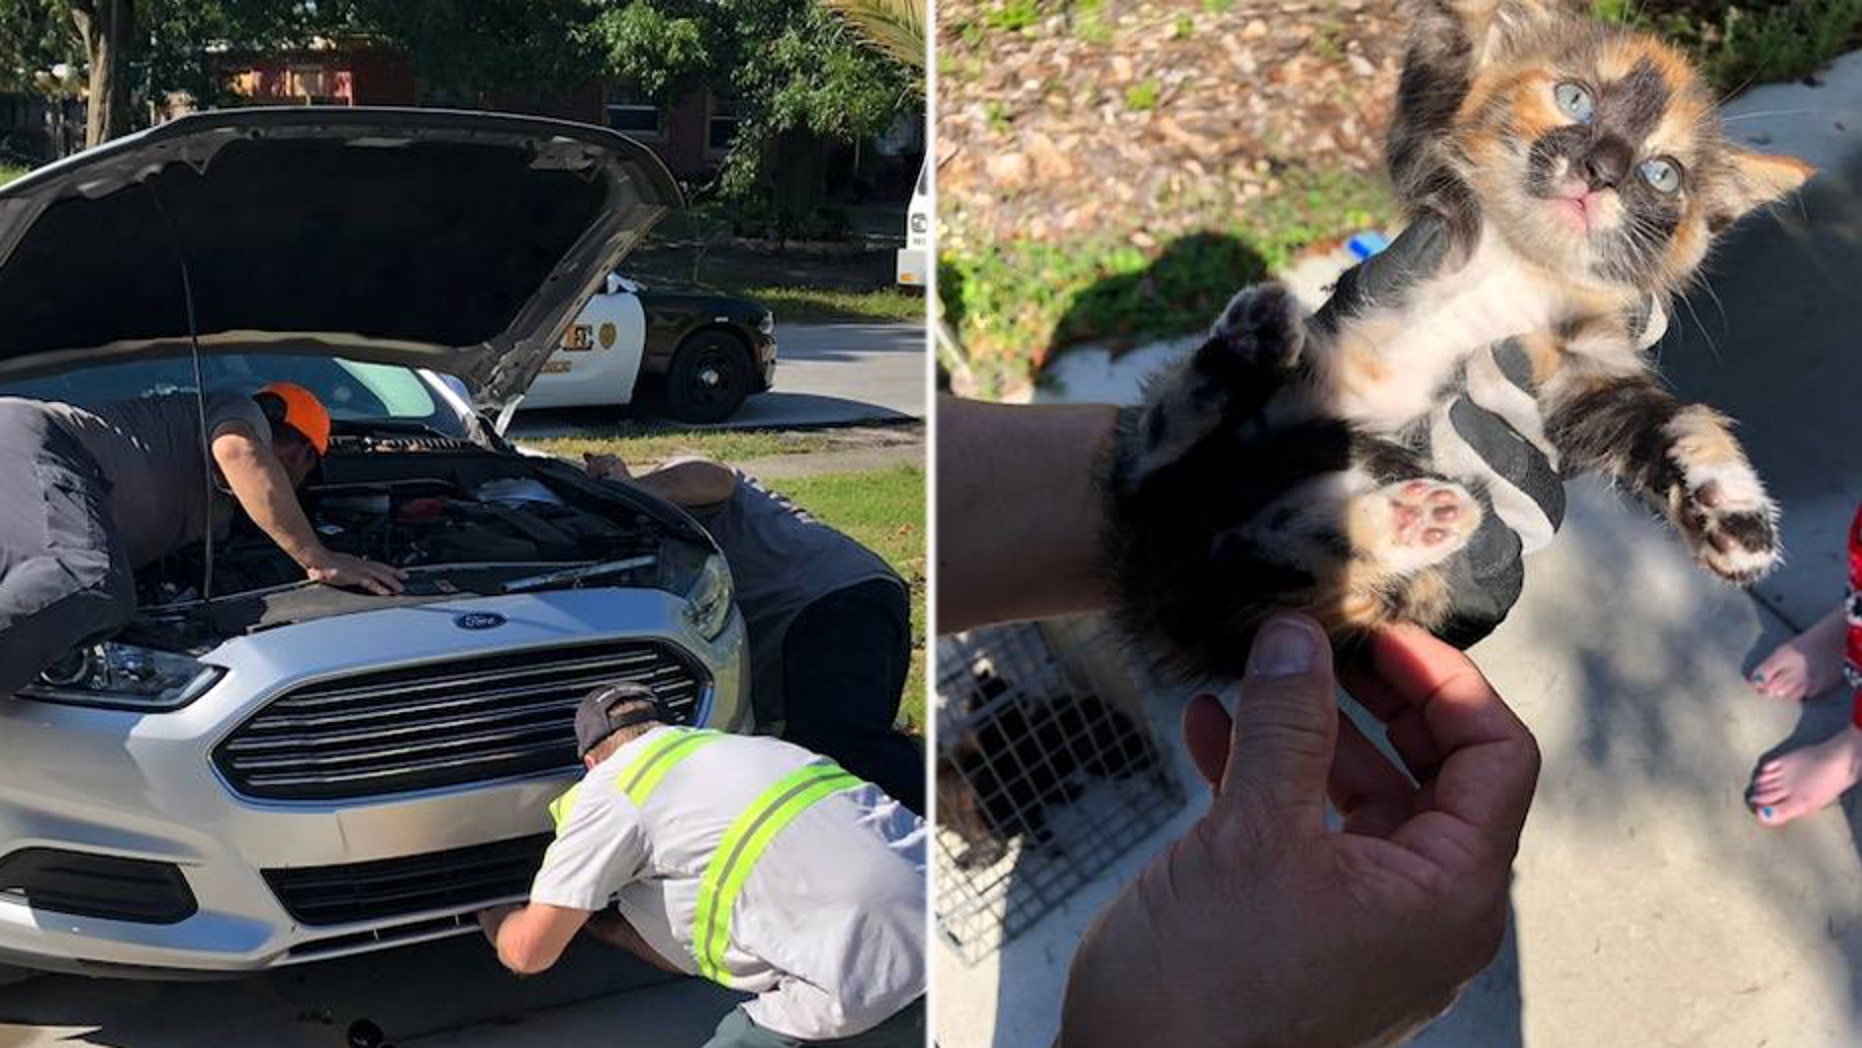 Ocoee Police Detective Michelle Grogan told Fox 35 that she heard the kittens as she was pulling out of her driveway.